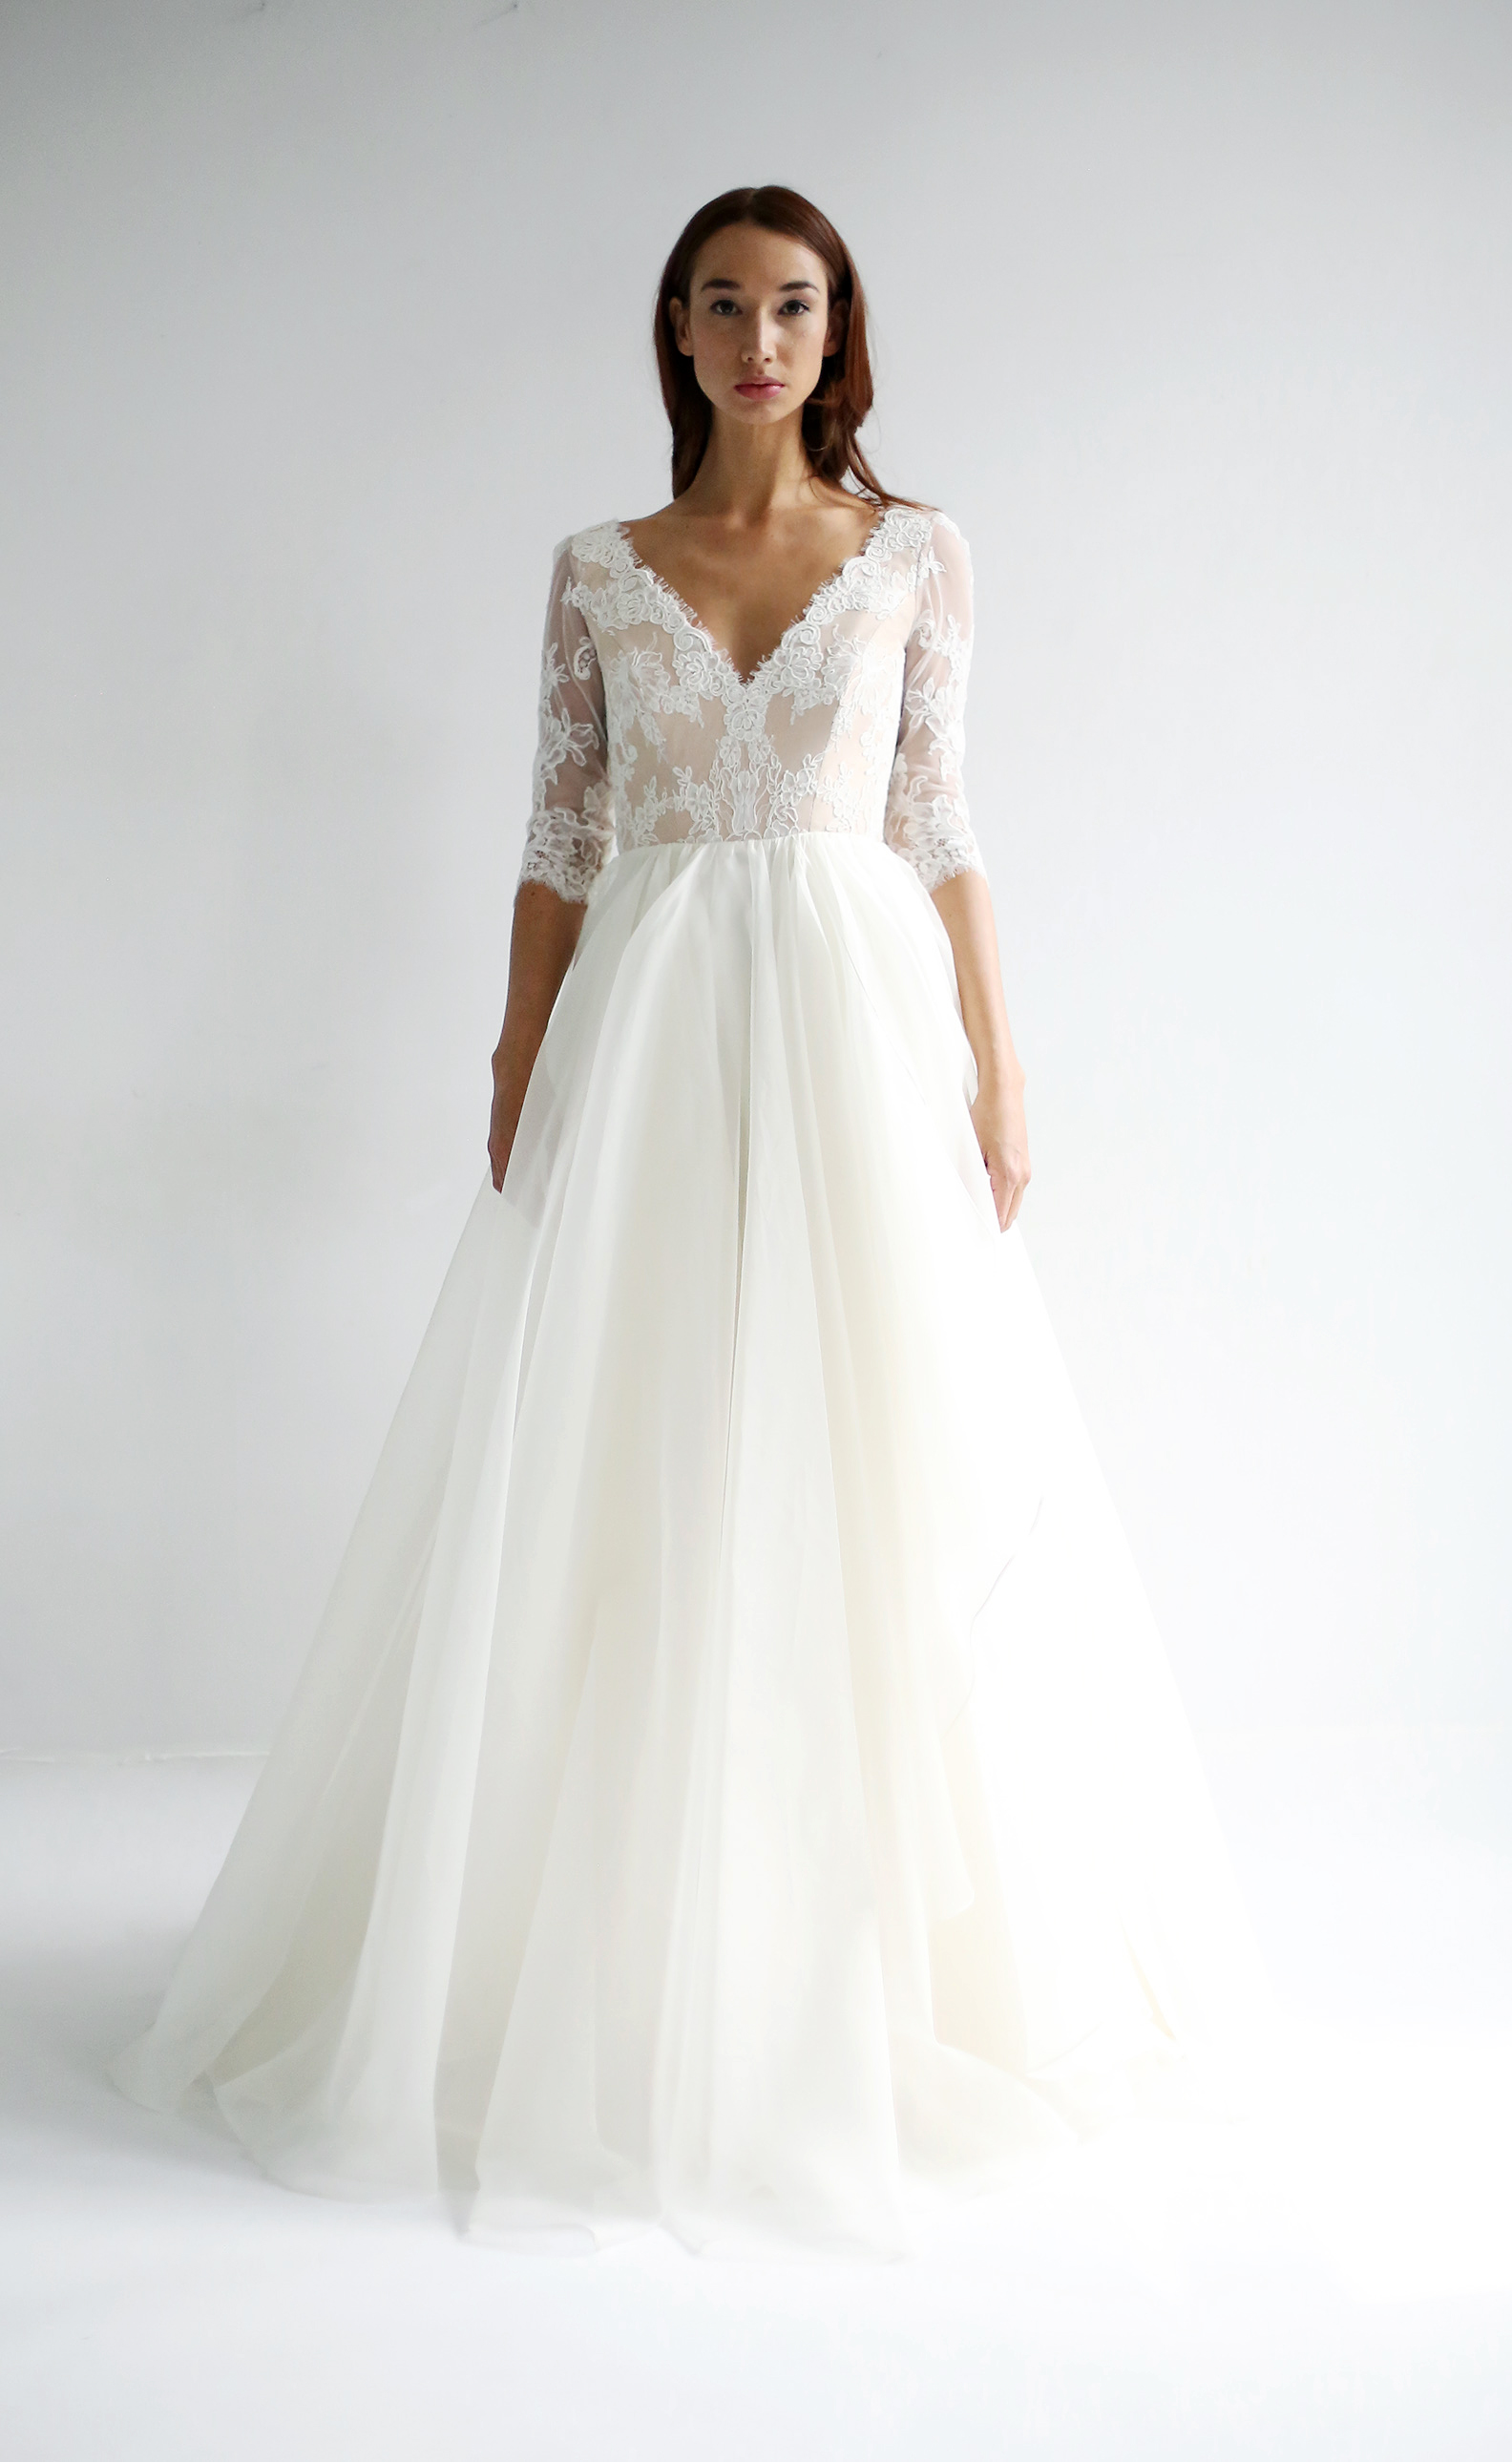 leanne marshall wedding dress spring 2019 lace elbow length sleeves v-neck